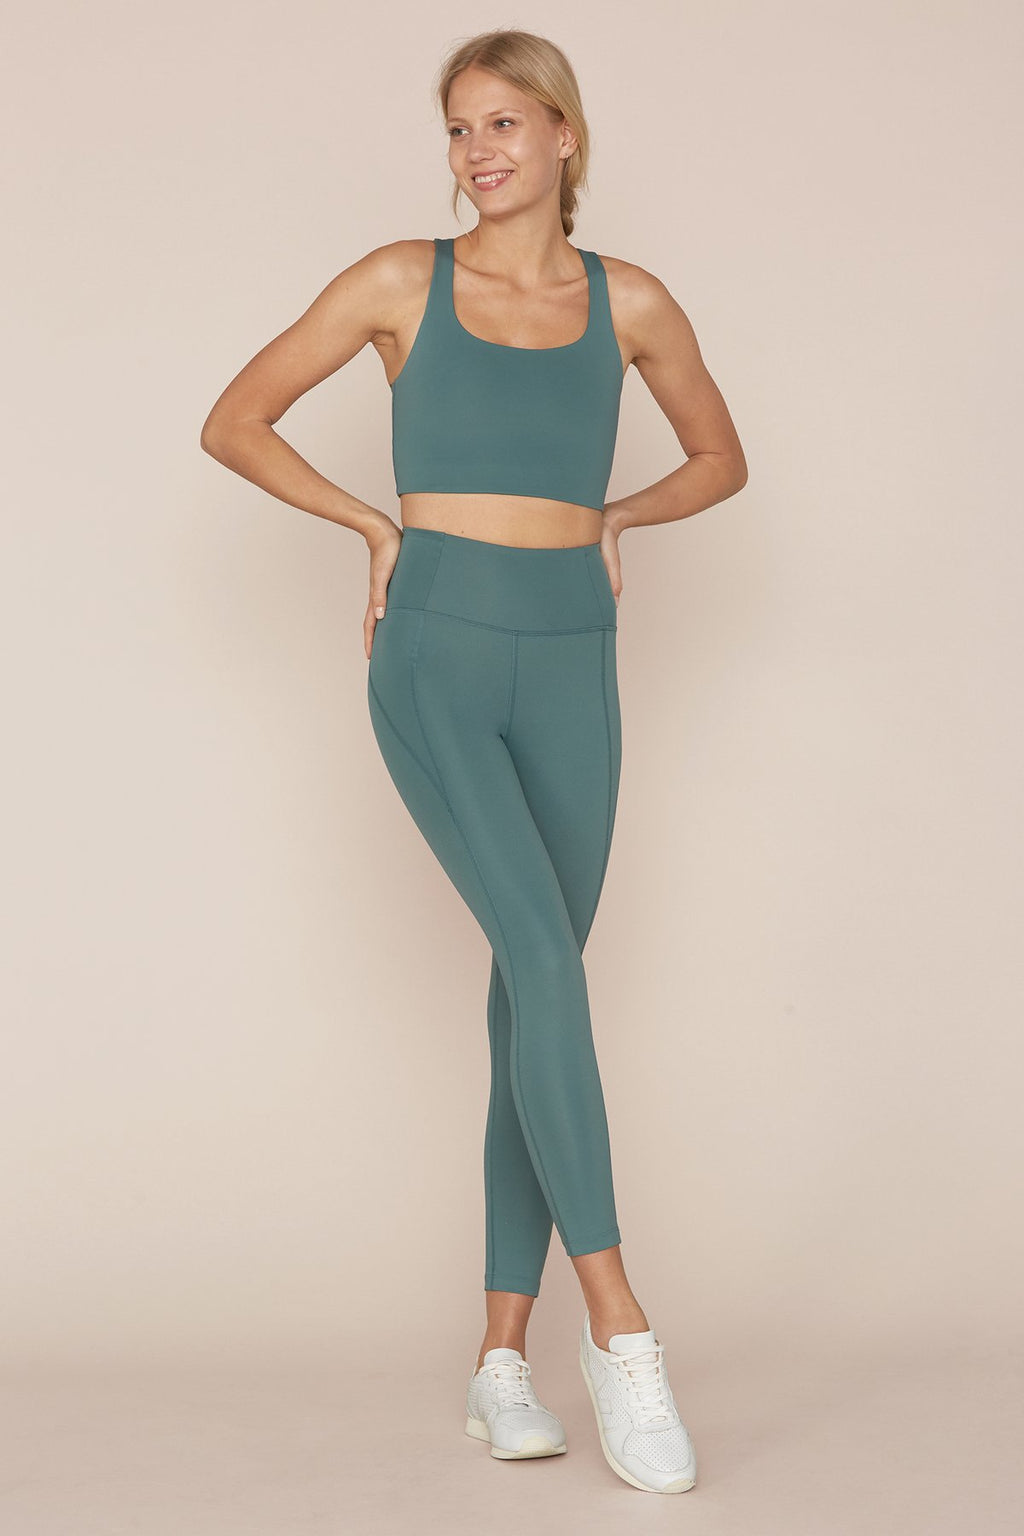 "COMPRESSIVE HIGH-RISE LEGGING 28.5"" - JADE"